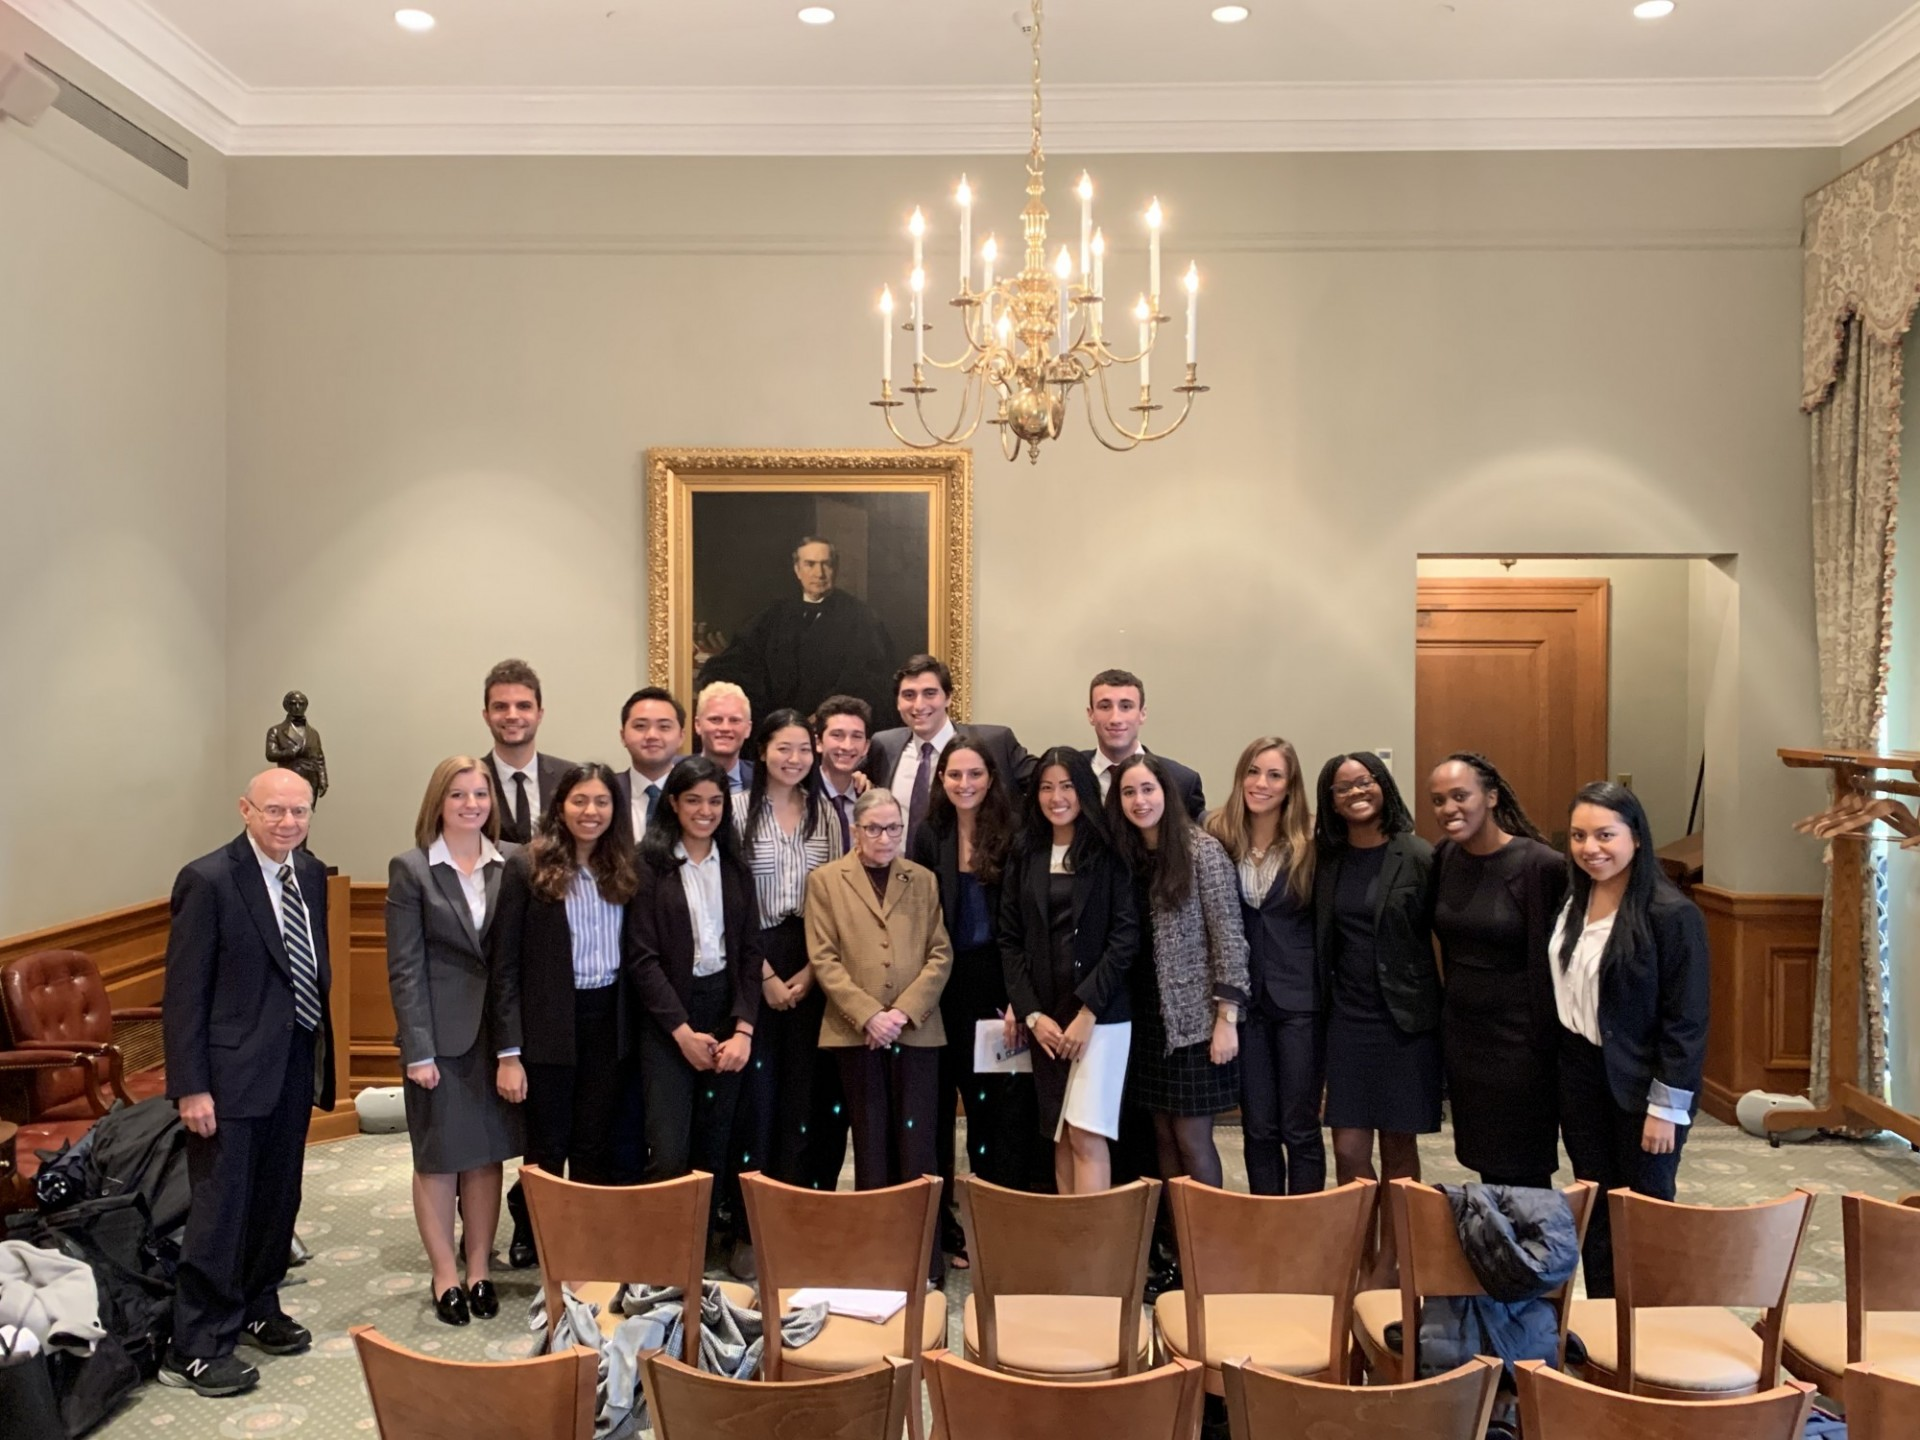 2019 Portrait of Justice Ruth Bader Ginsburg with students at U.S. Supreme Court